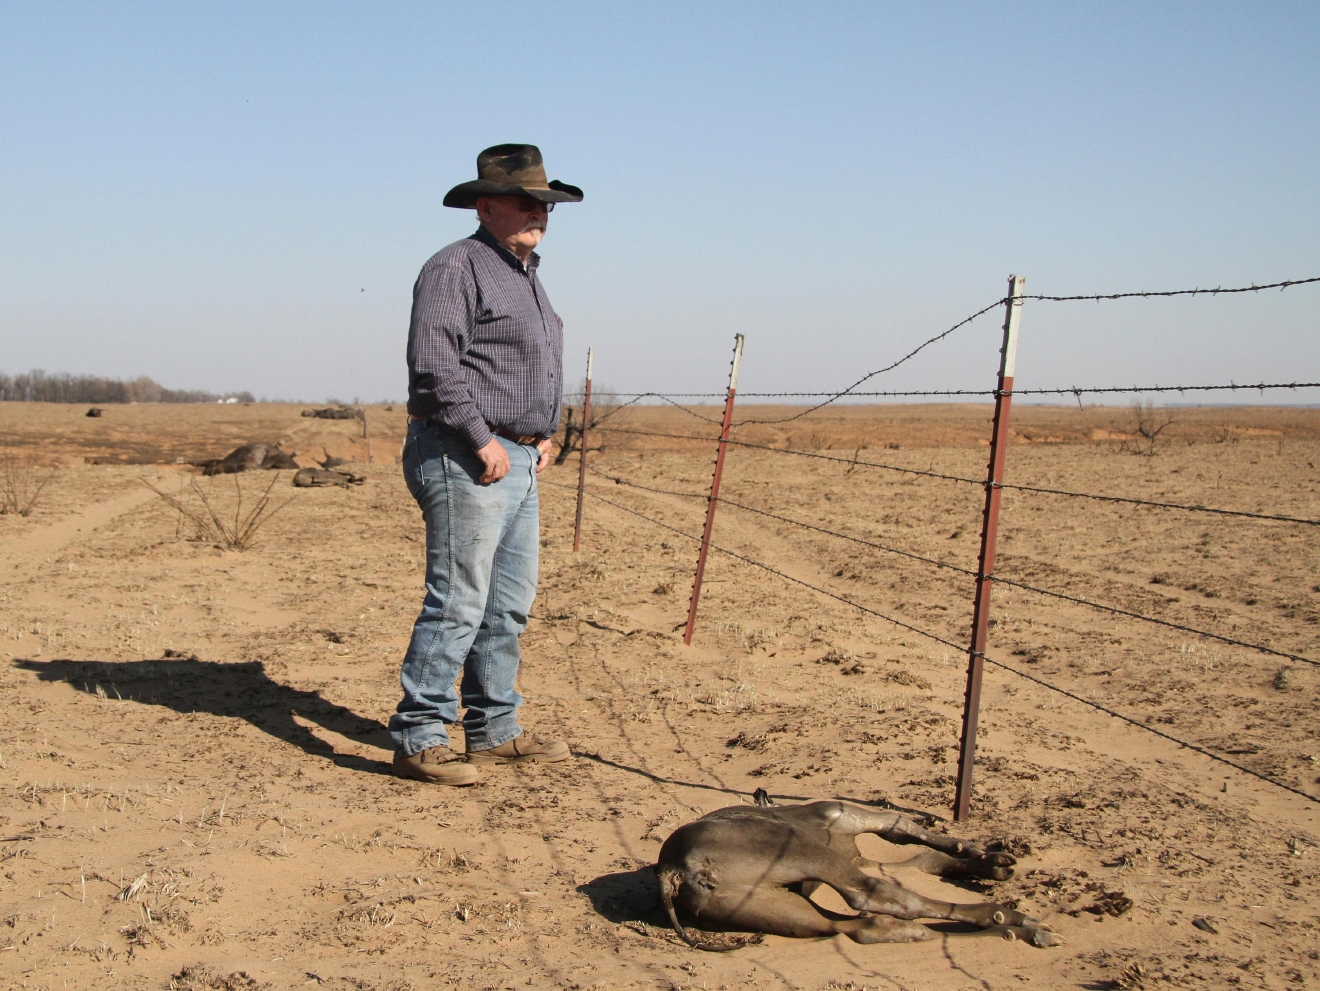 In a March 7, 2017 photo, rancher Greg Gardner, right, surveys some of the damage to his land after the recent wildfire. Gardiner's family has been ranching in Clark County for five generations, having homesteaded in 1885. This week's fires are their ranch's worst natural disaster, killing about 500 cattle. (Mike Pearce/The Wichita Eagle via AP)